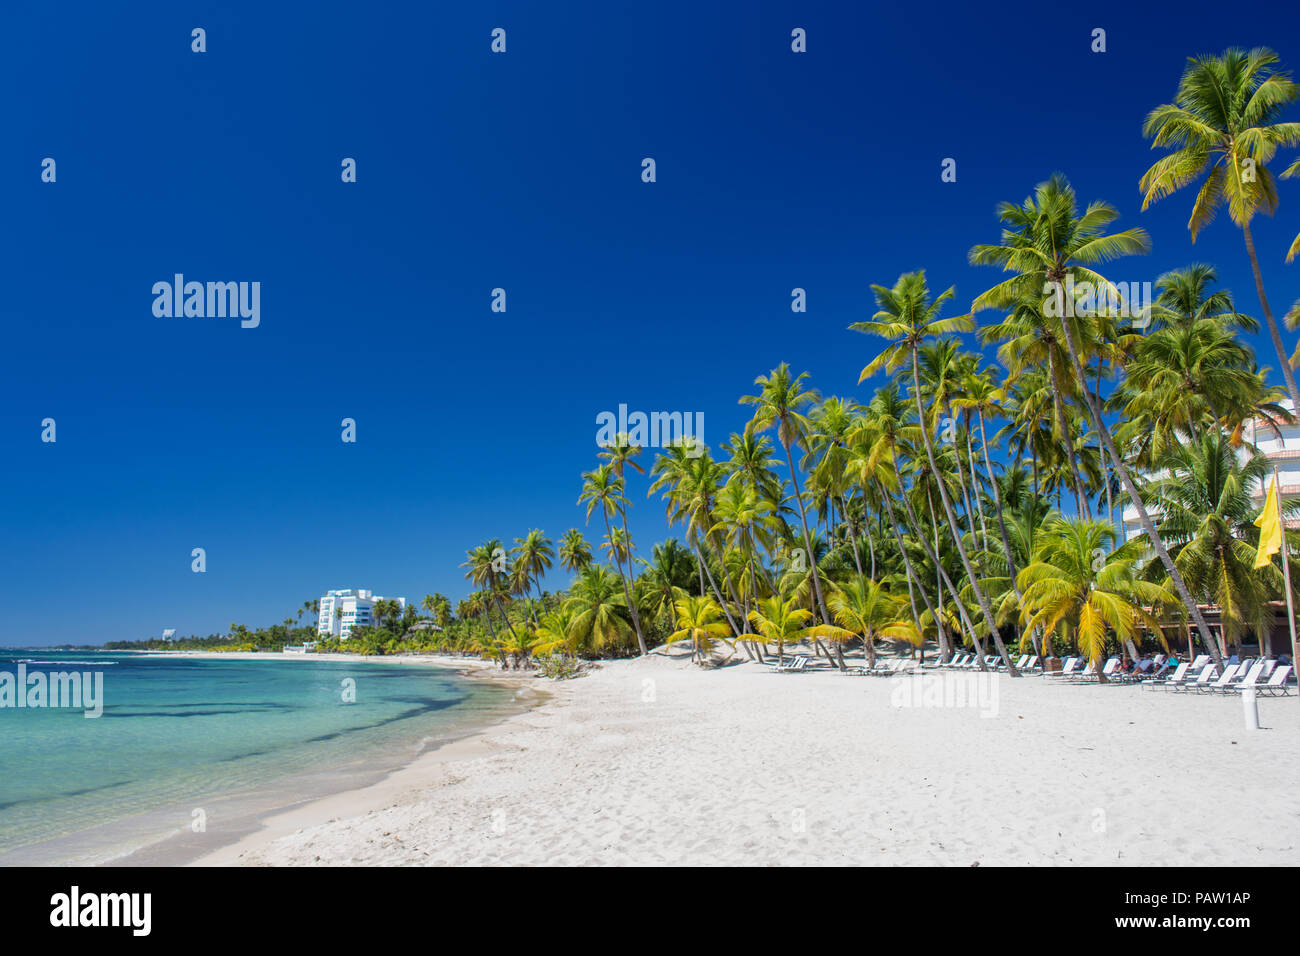 Tropical sand Beach on the Caribbean Sea. Clear blue sea and tall palm trees - Stock Image